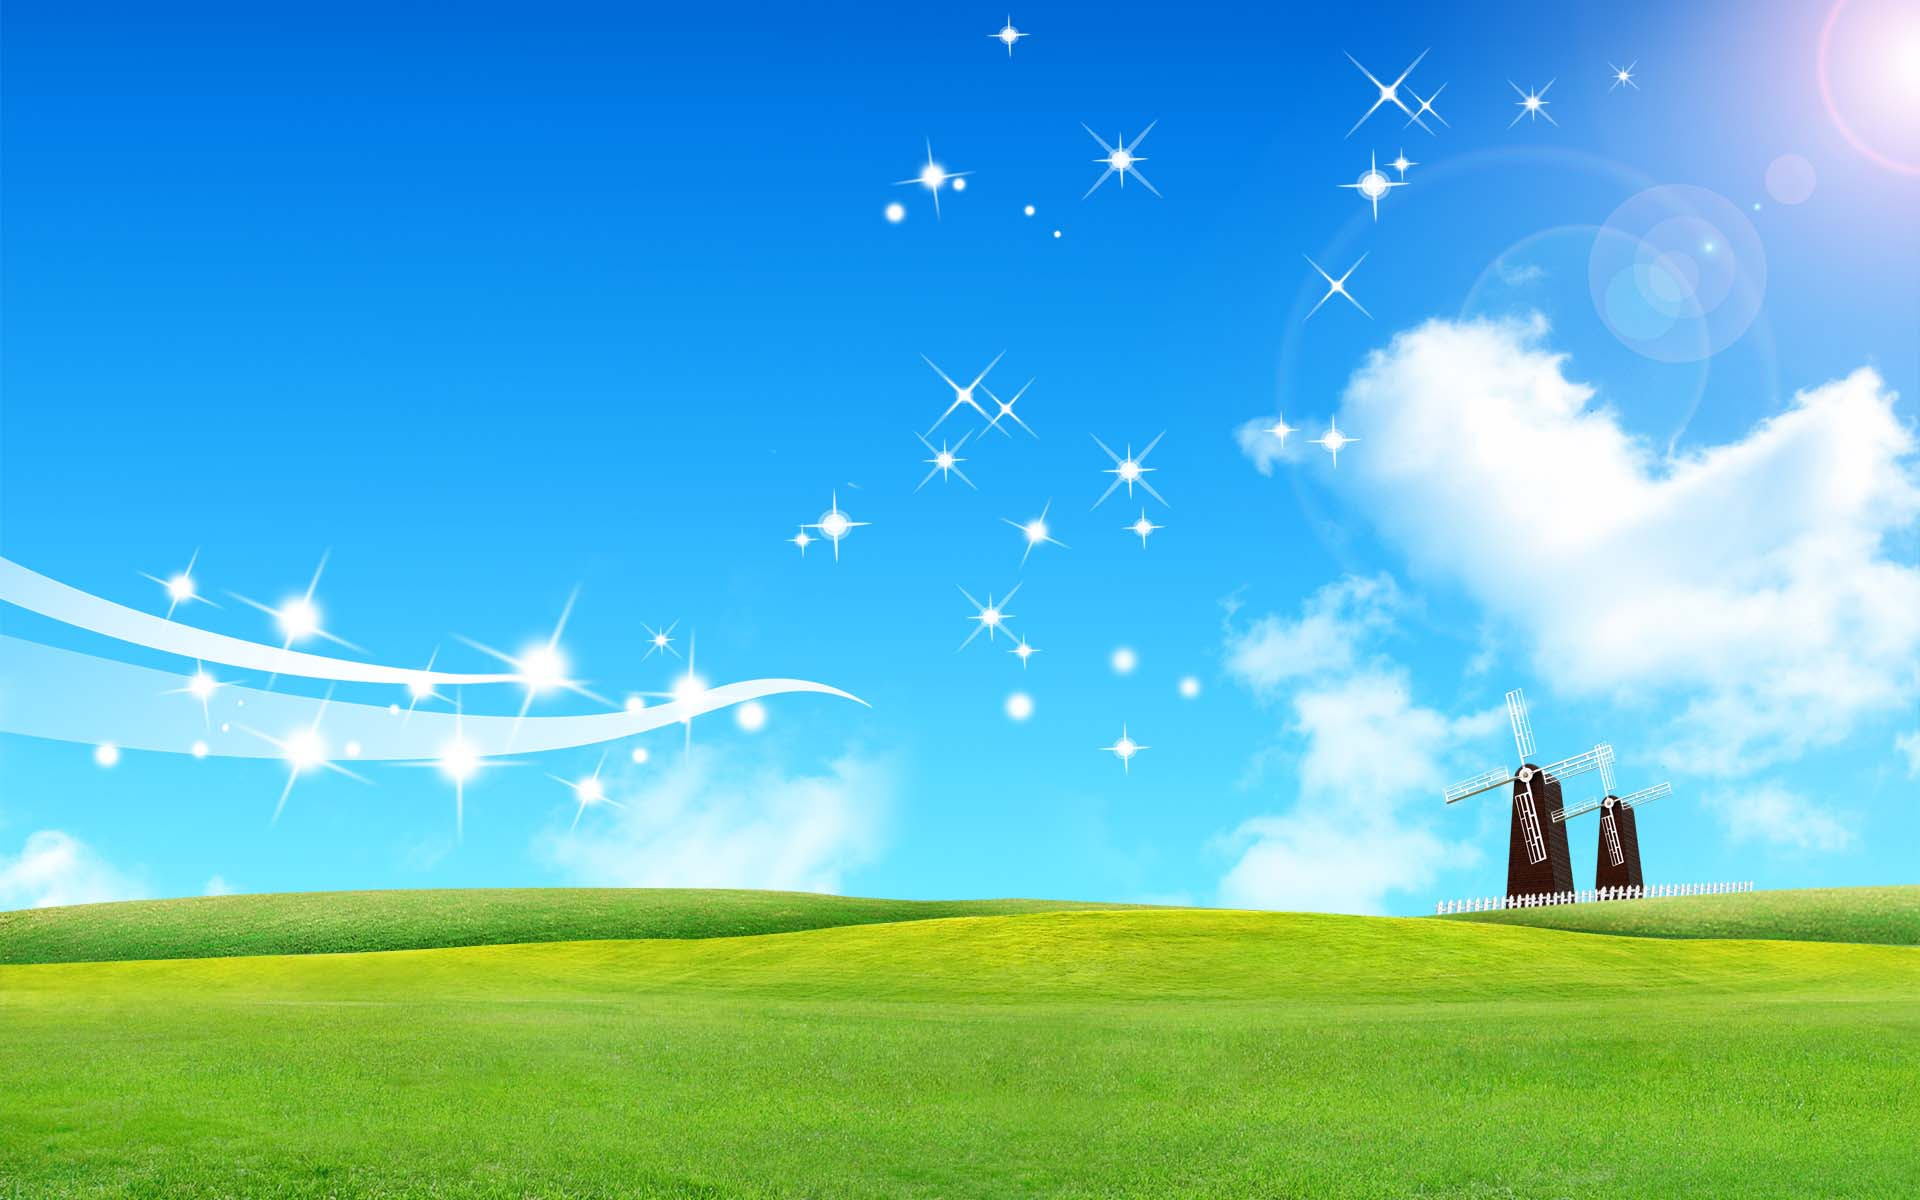 Beautiful 3D sky wallpaper